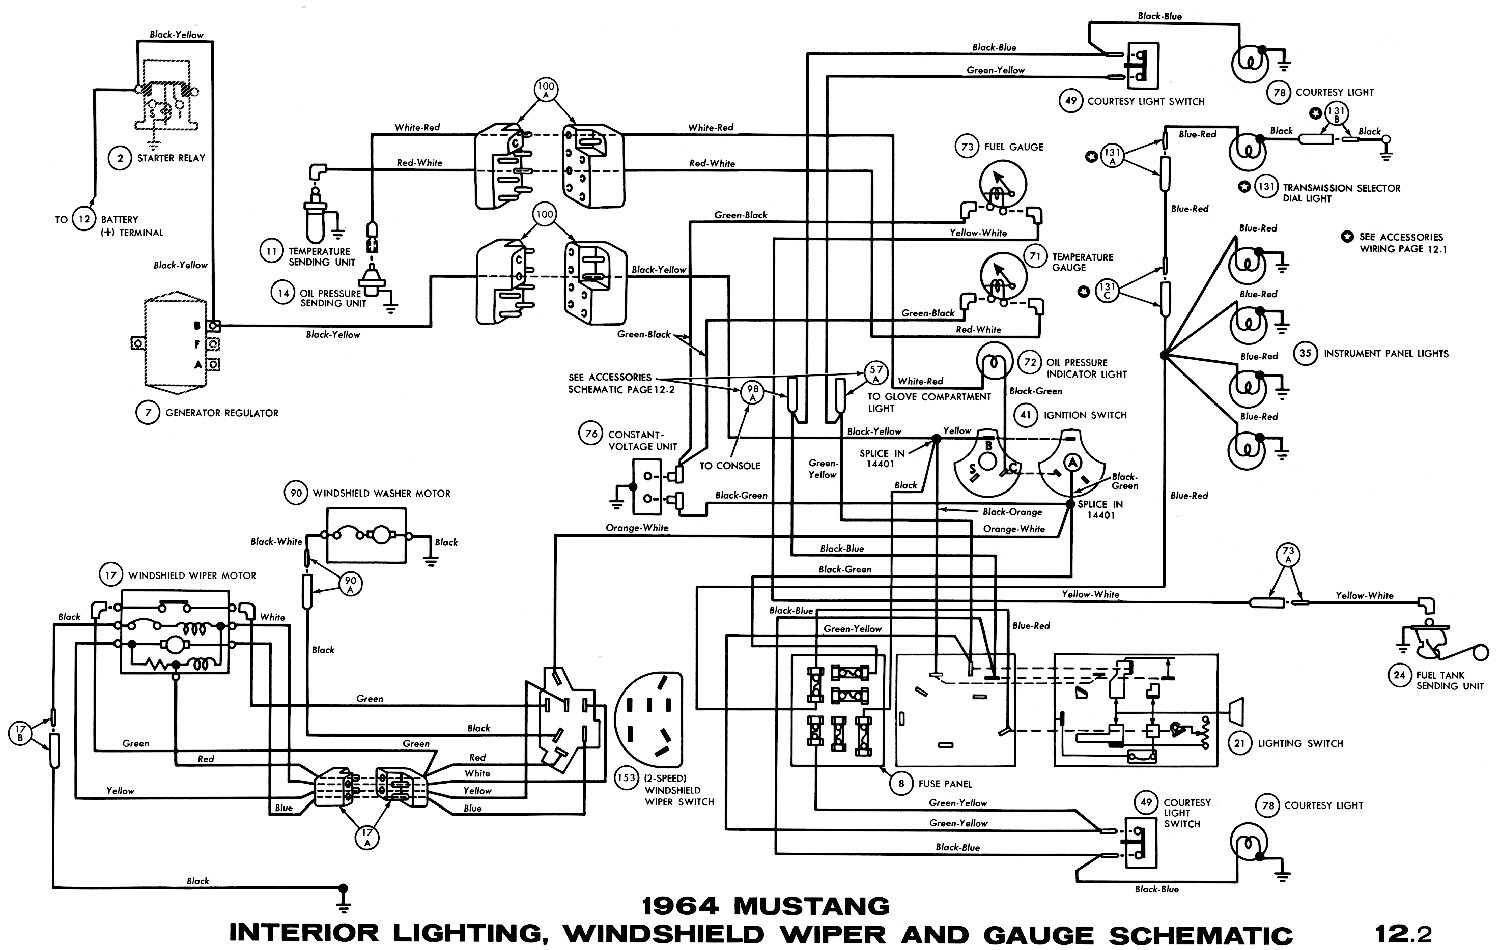 hight resolution of 1964 mustang wiring diagrams average joe restoration 67 mustang backup light wiring diagram